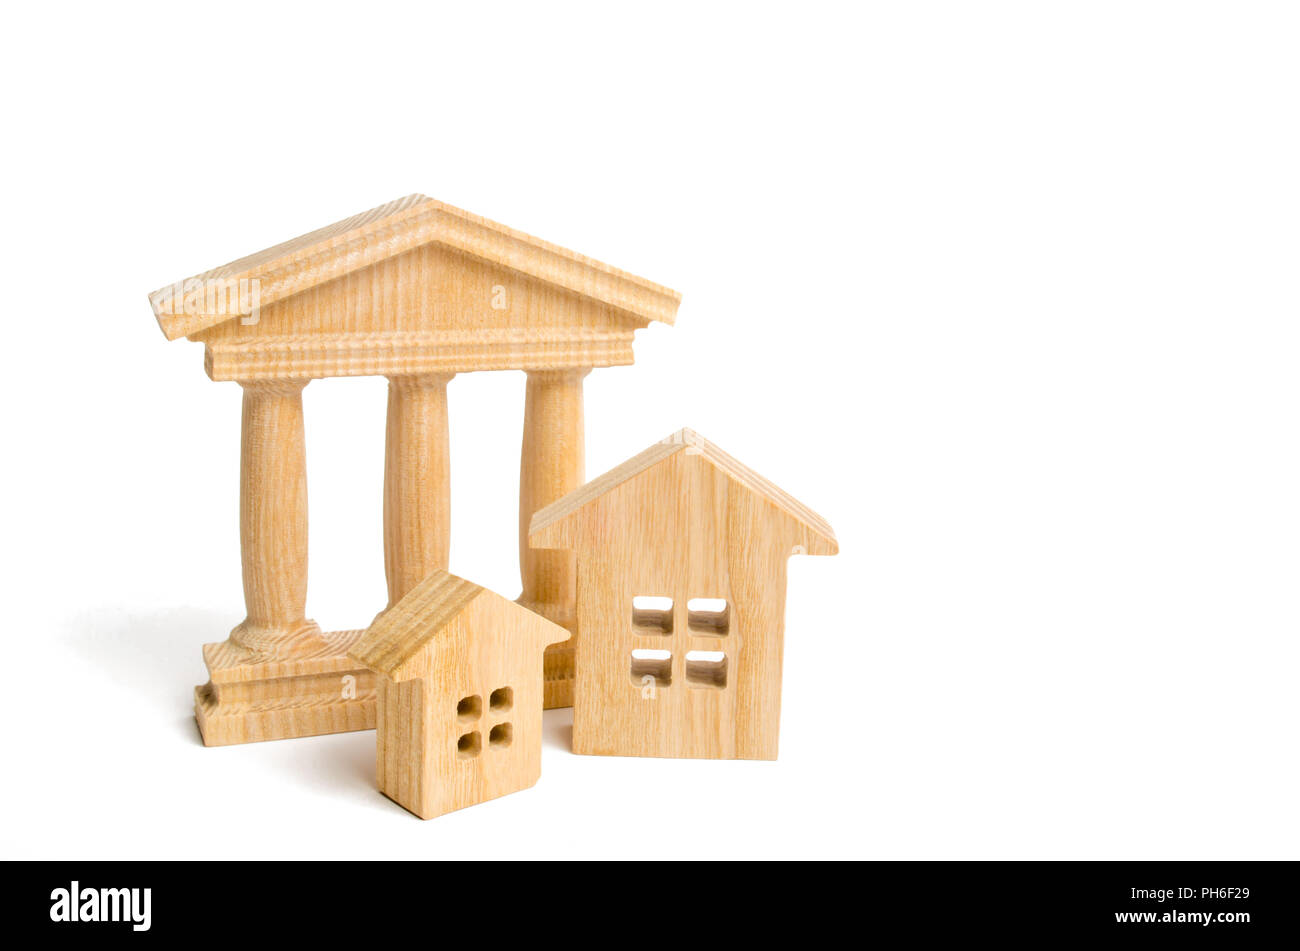 Wooden figures of buildings and a pantheon. Concept of urban structure and standardization. The role of government in society. Banking system, investm - Stock Image